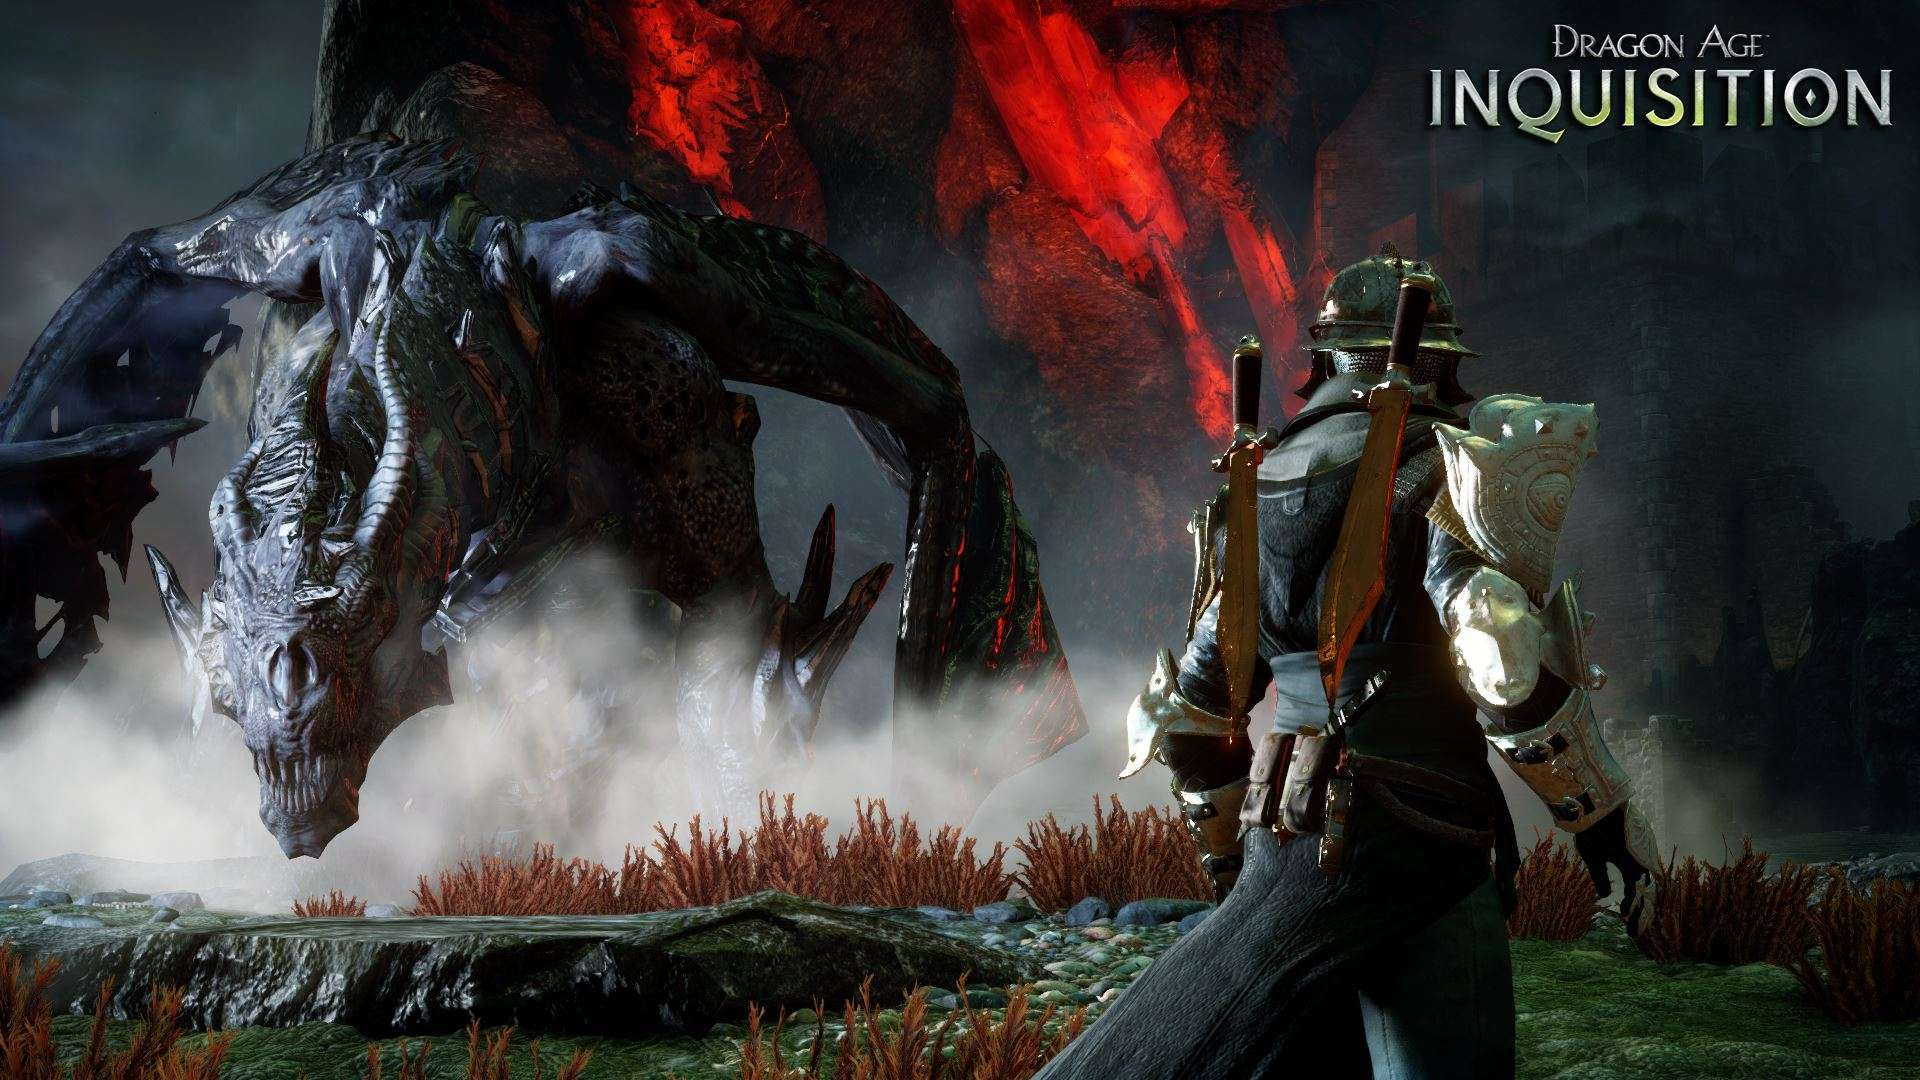 Wallpaper Dragon Age Inquisition Hd Wallpaper 1080p Upload at June 7 1920x1080